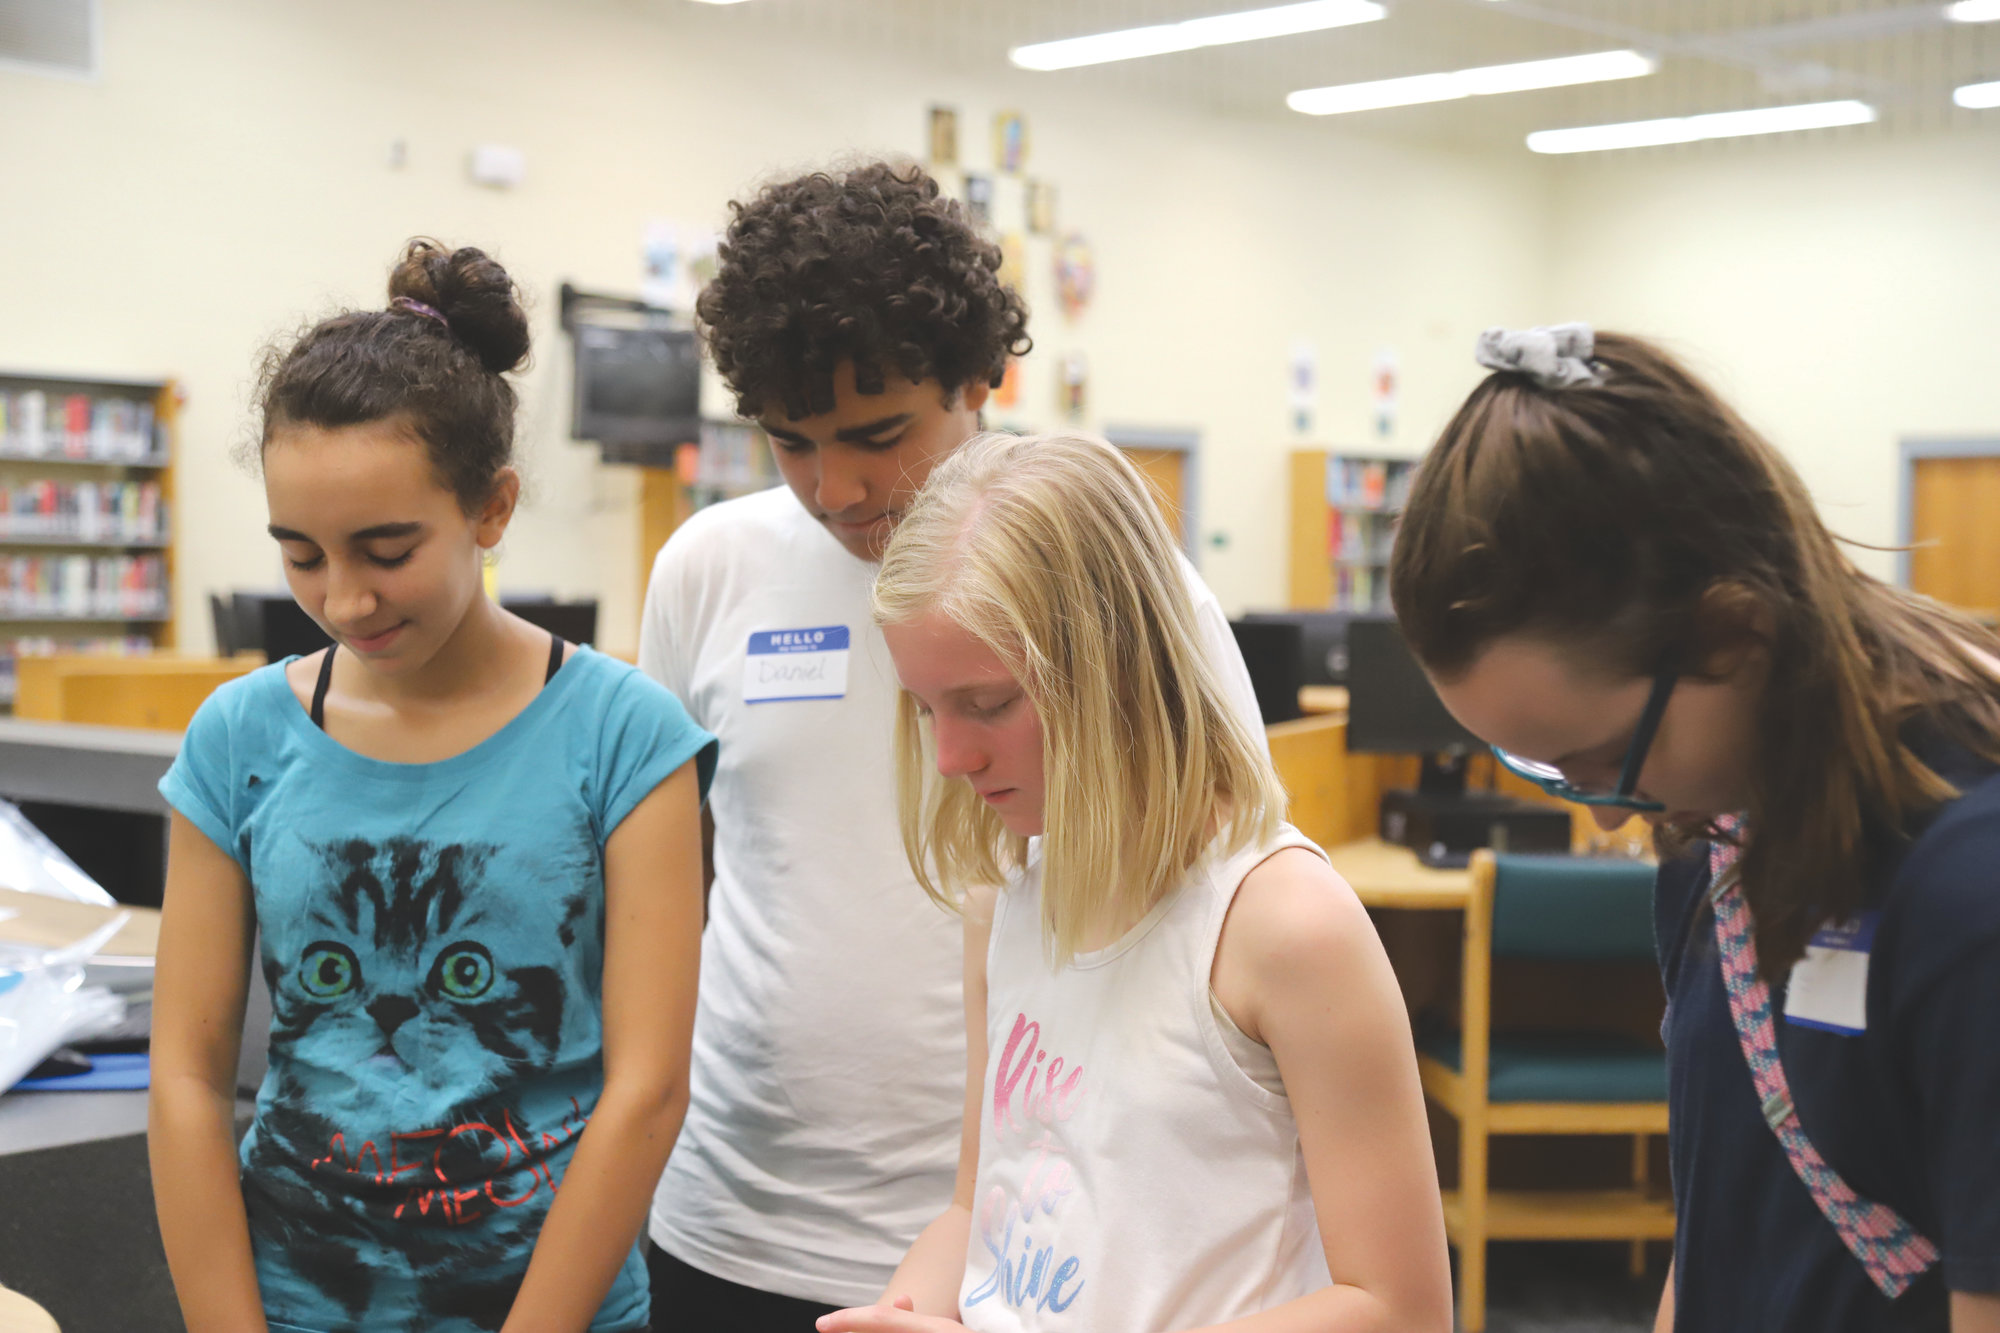 From left, Maria Fleitas, Daniel Fleitas, Dustie Estes and Lindsey Laity pray in the Chestnut Oaks Middle School library.